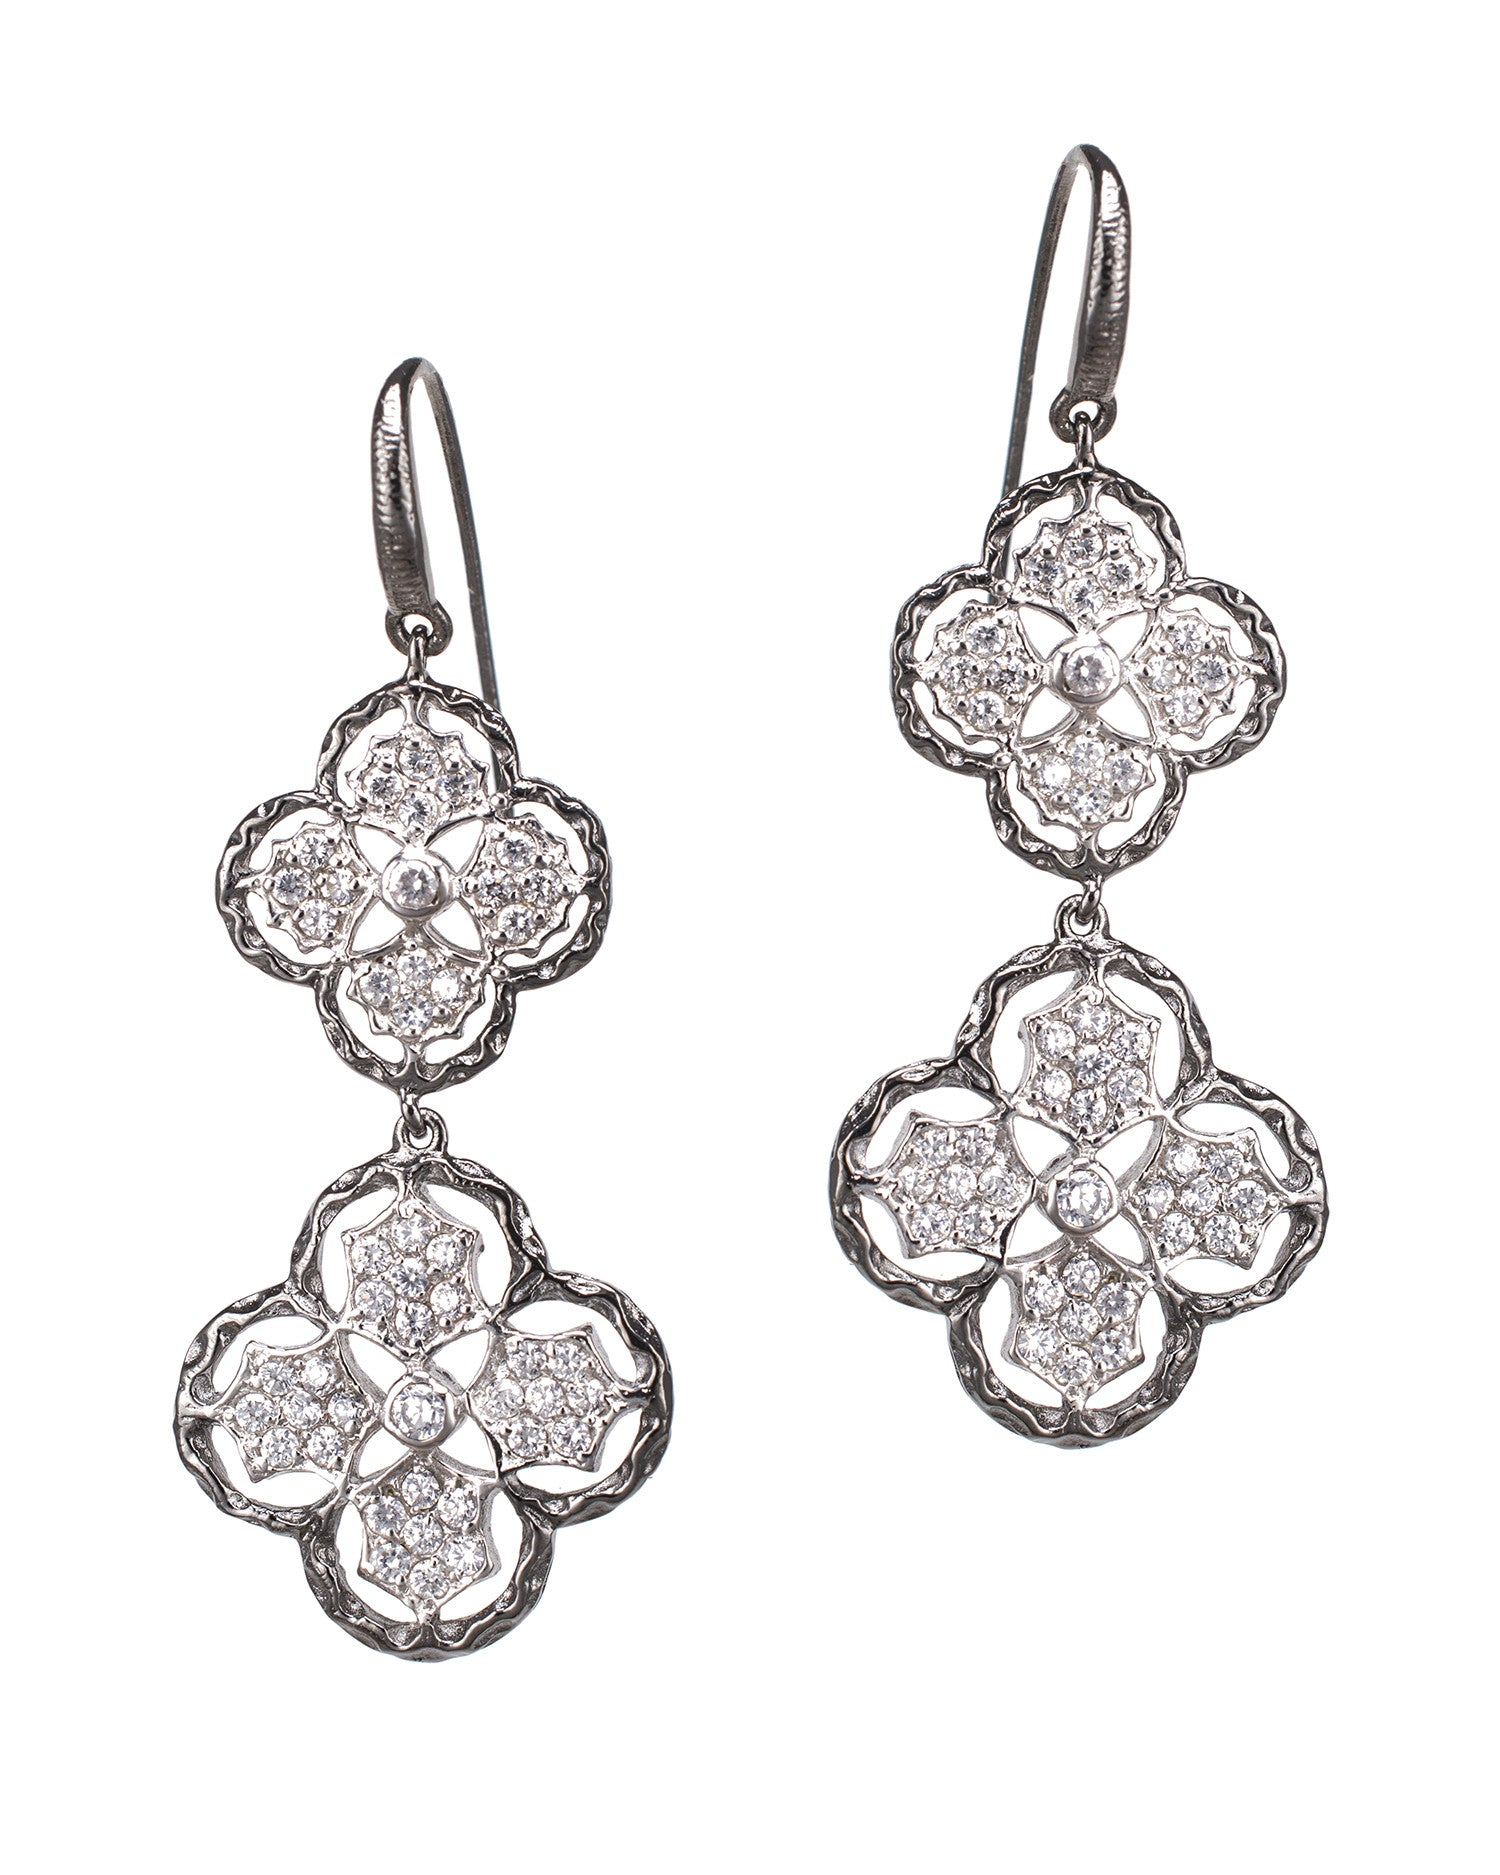 Italian Clover Earrings